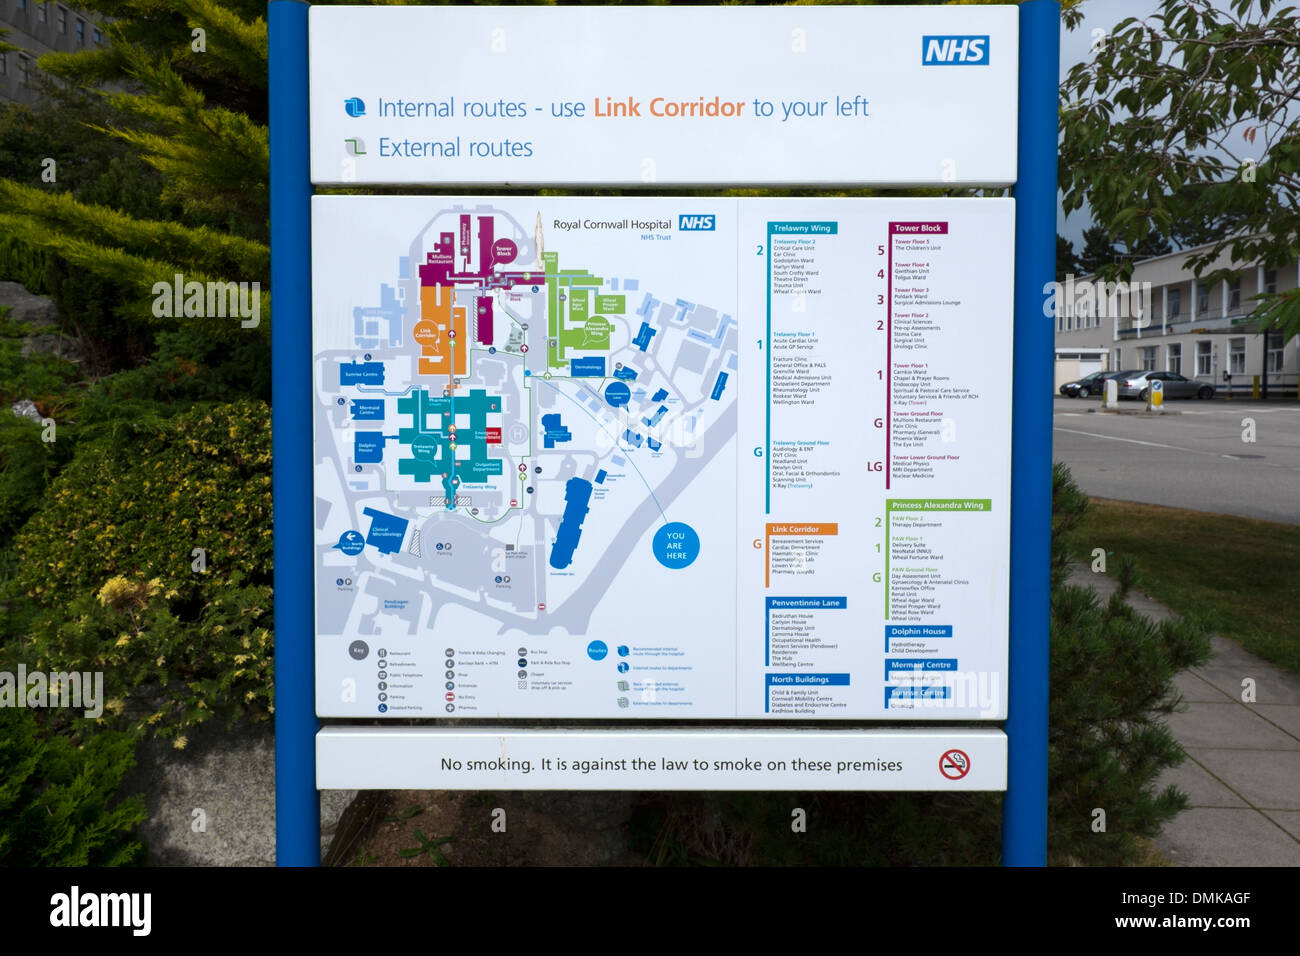 Royal Shrewsbury Hospital Map Hospital Map Stock Photos & Hospital Map Stock Images   Alamy